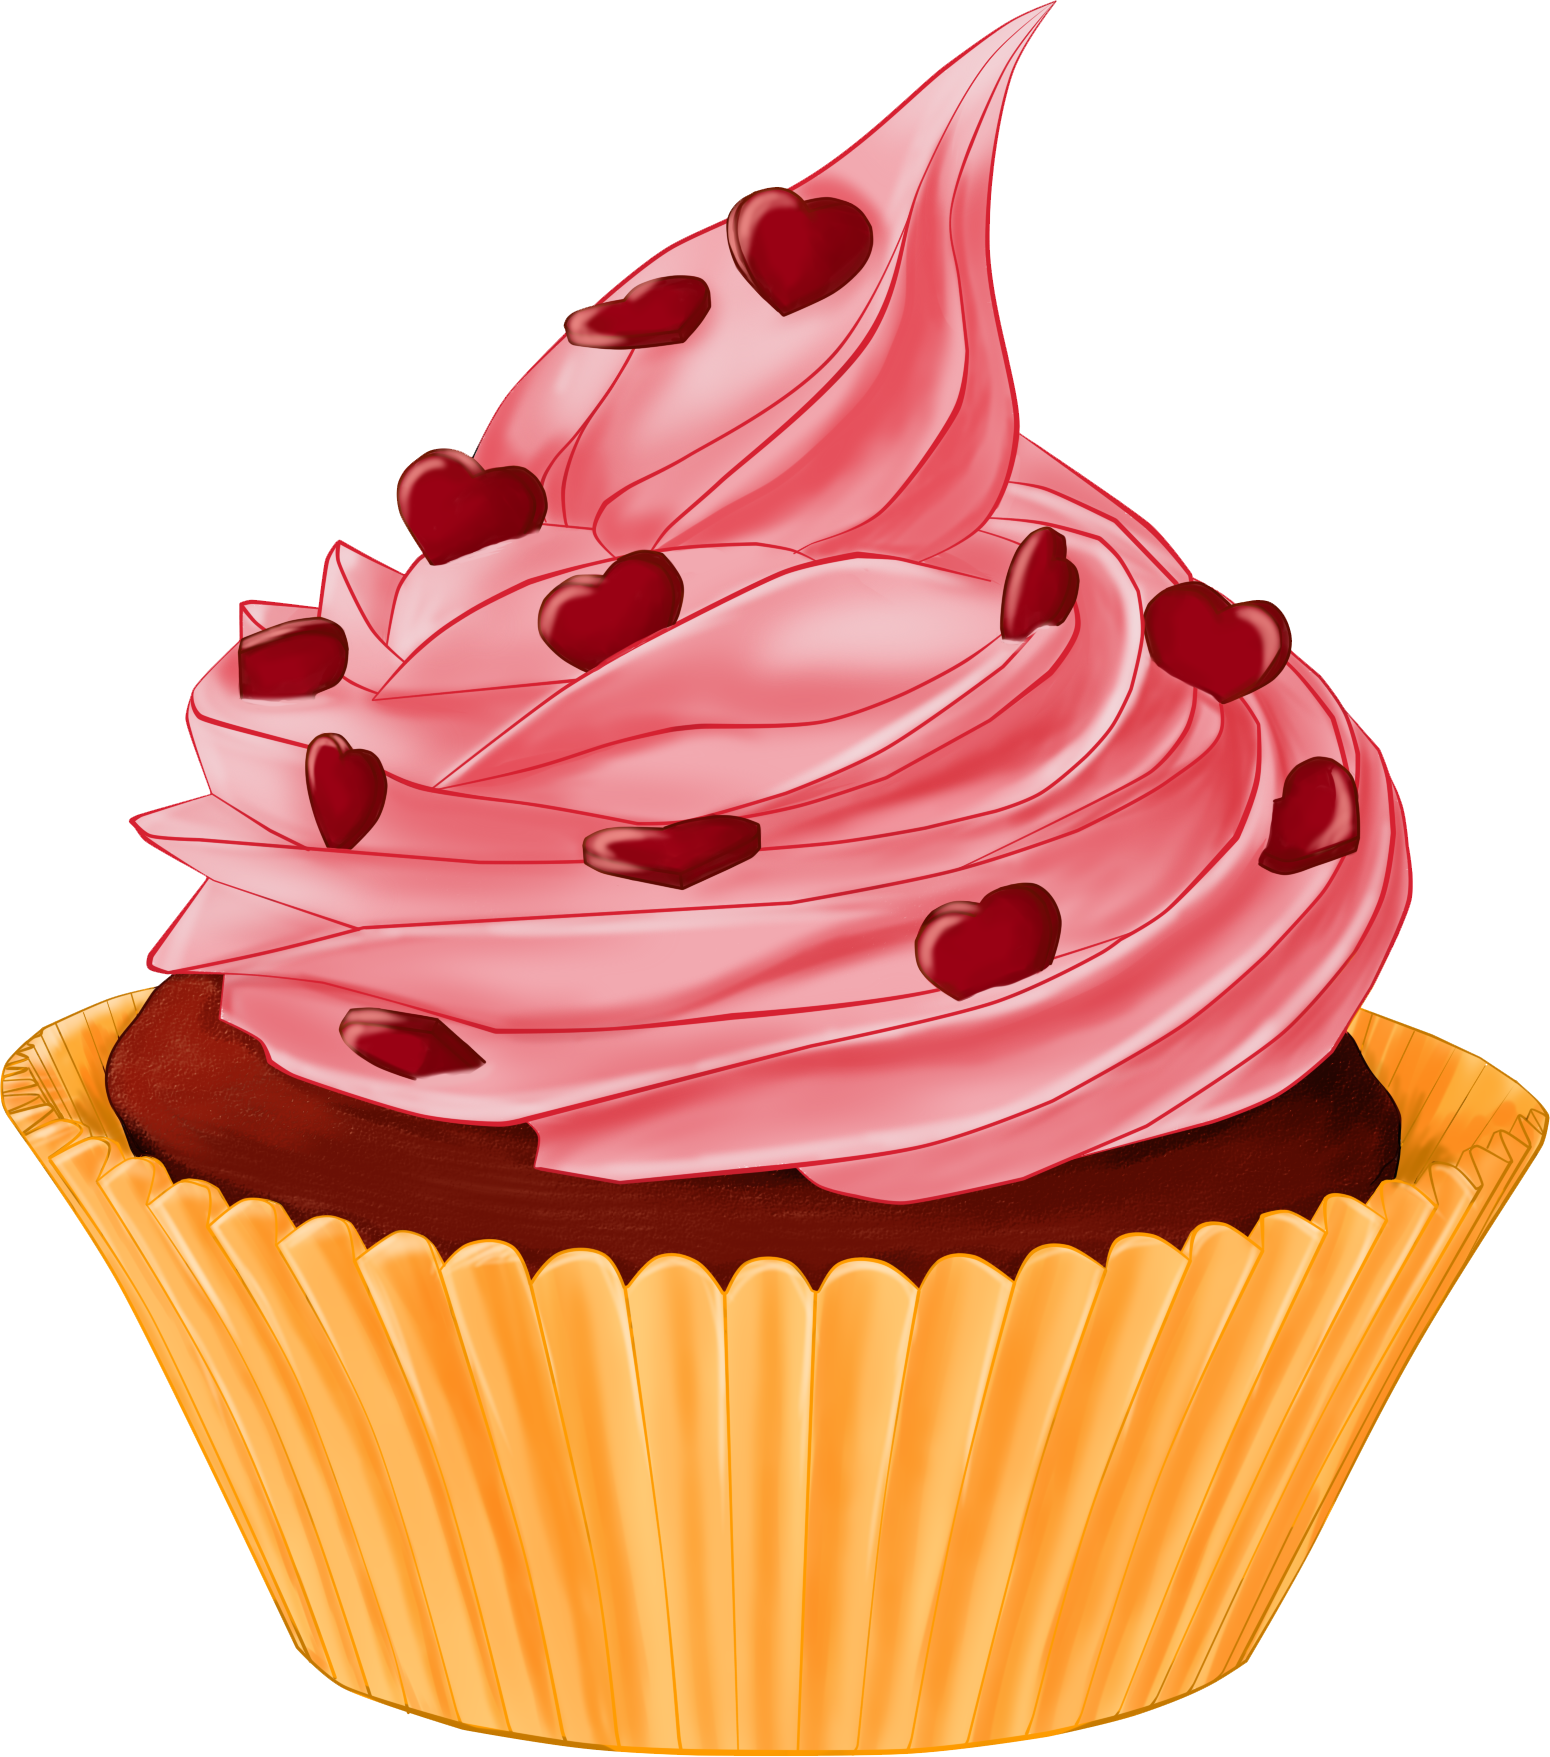 Png cupcakes x sketchbook. Lady clipart cupcake